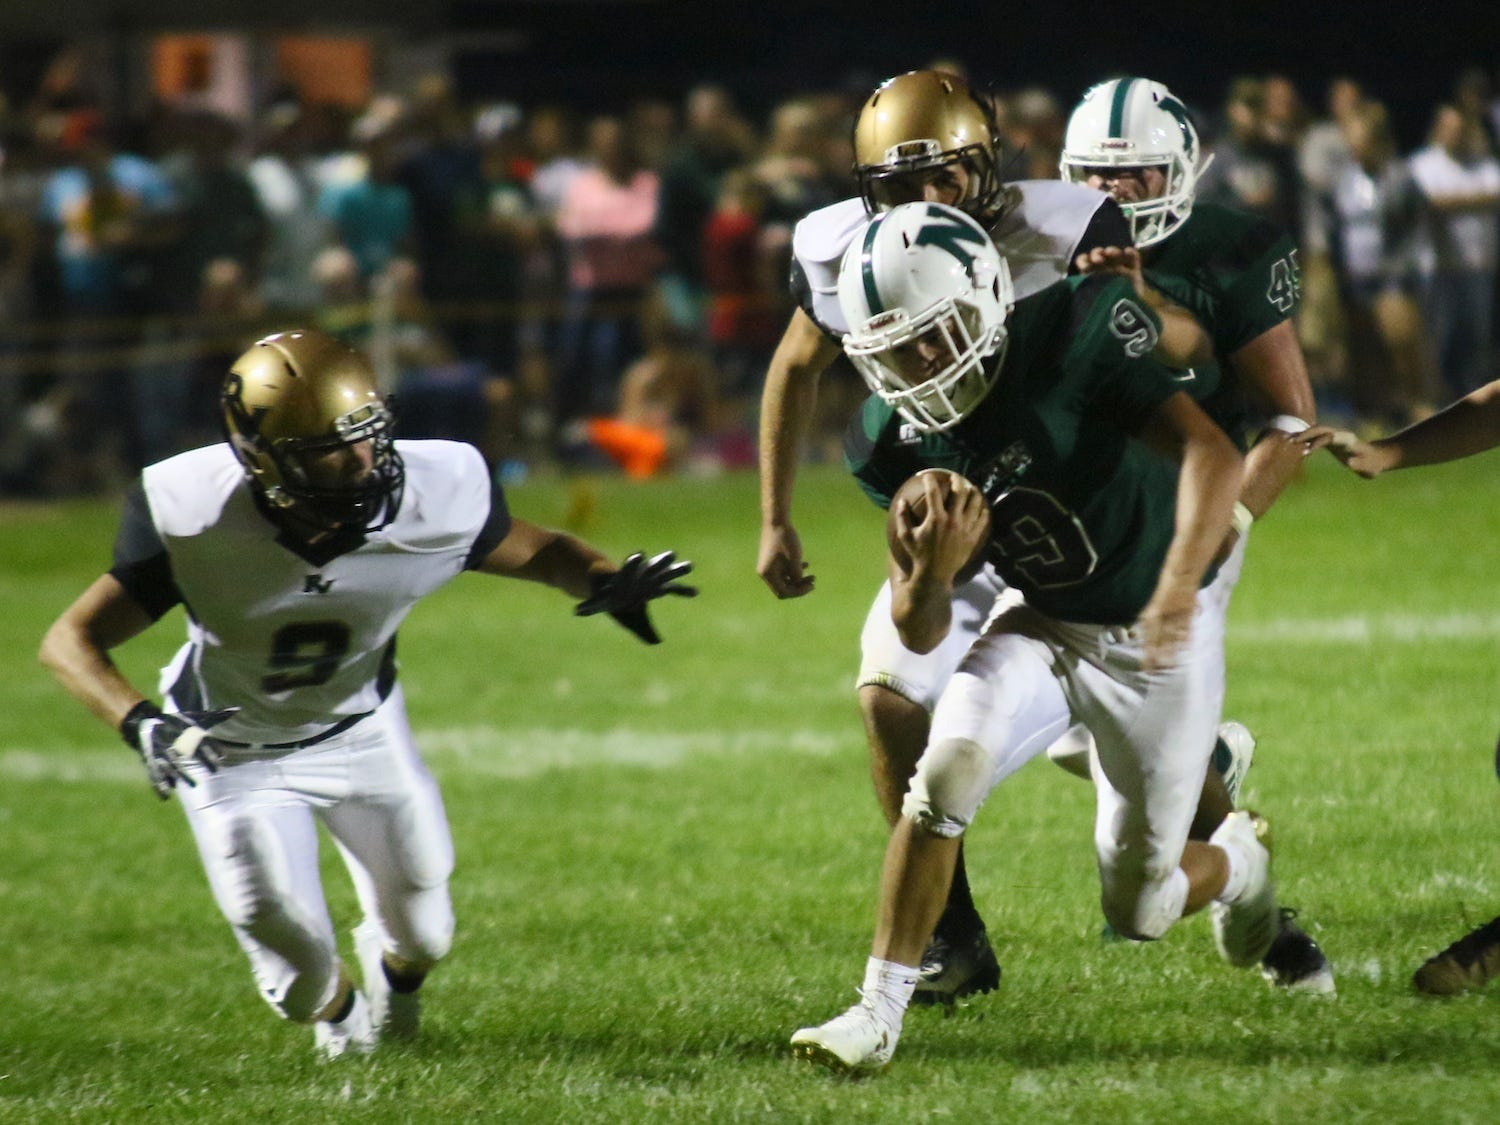 Northridge junior Dylon Parman scores the first touchdown of the 2018 season for the Vikings. Northridge lost to River View 30-13 on Friday, Aug. 24, 2018 at home.